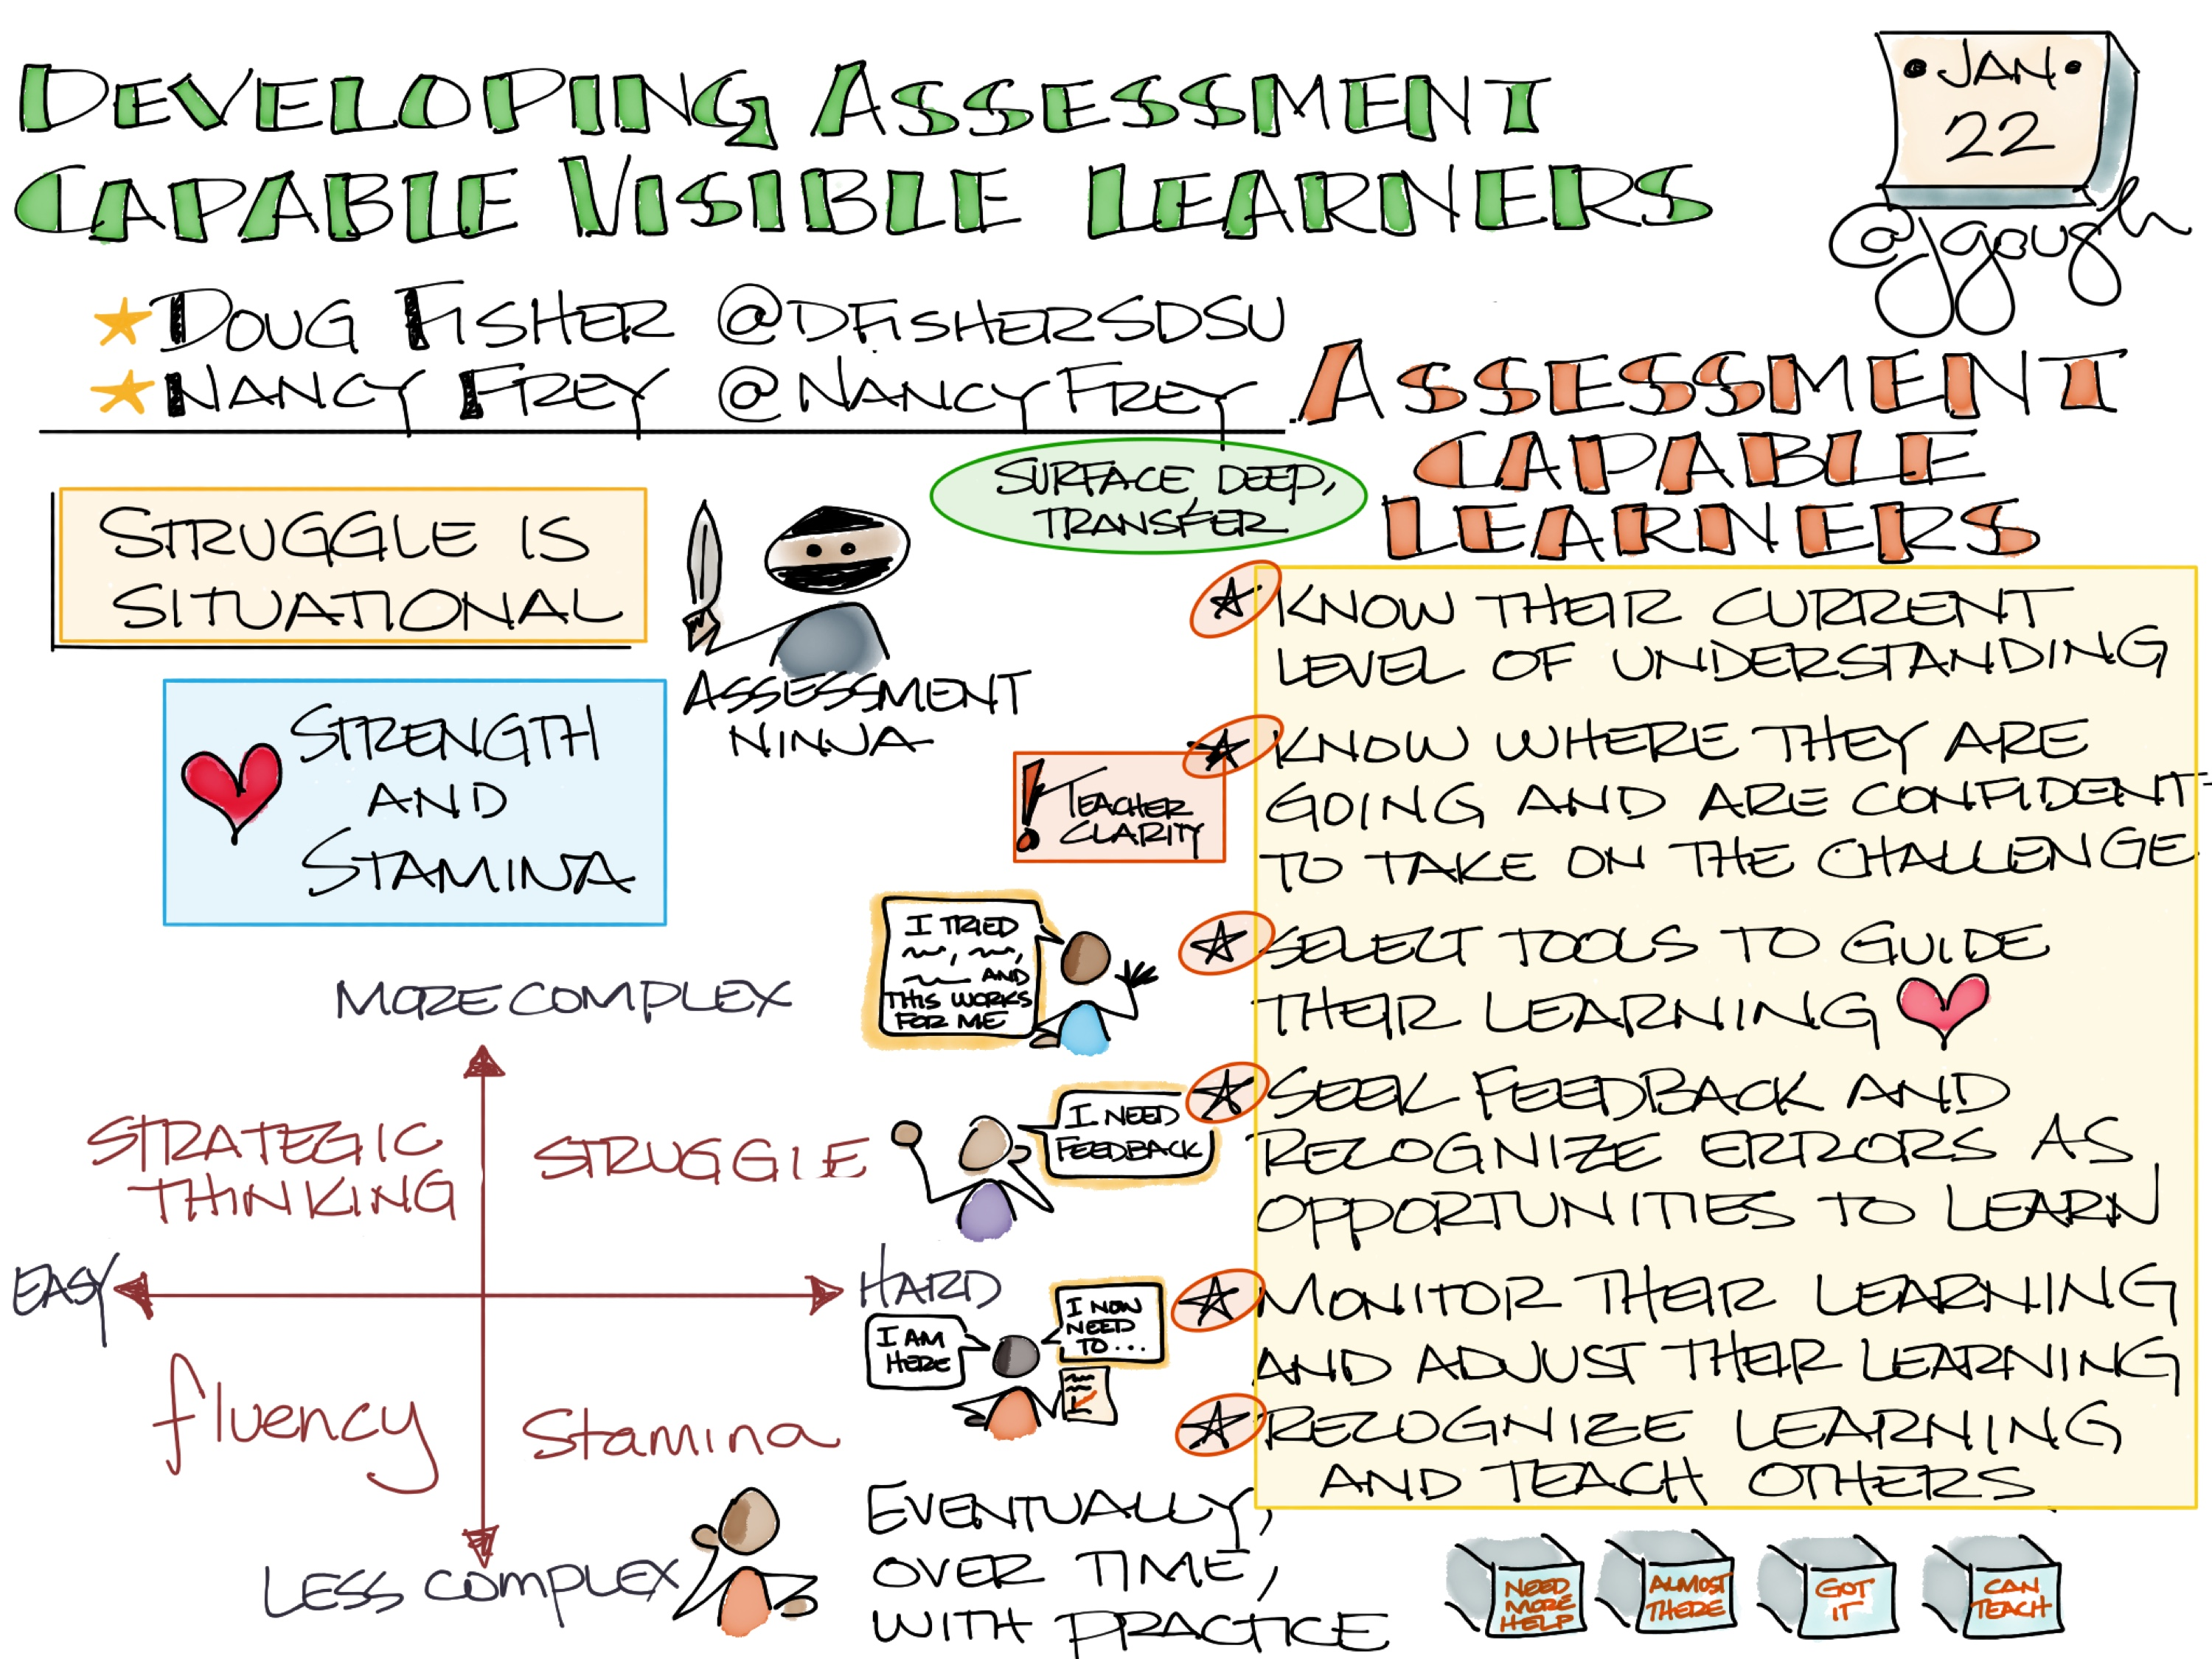 Developing #AssessmentCapable #VisibleLearners @DFisherSDSU @NancyFrey session @CorwinPress